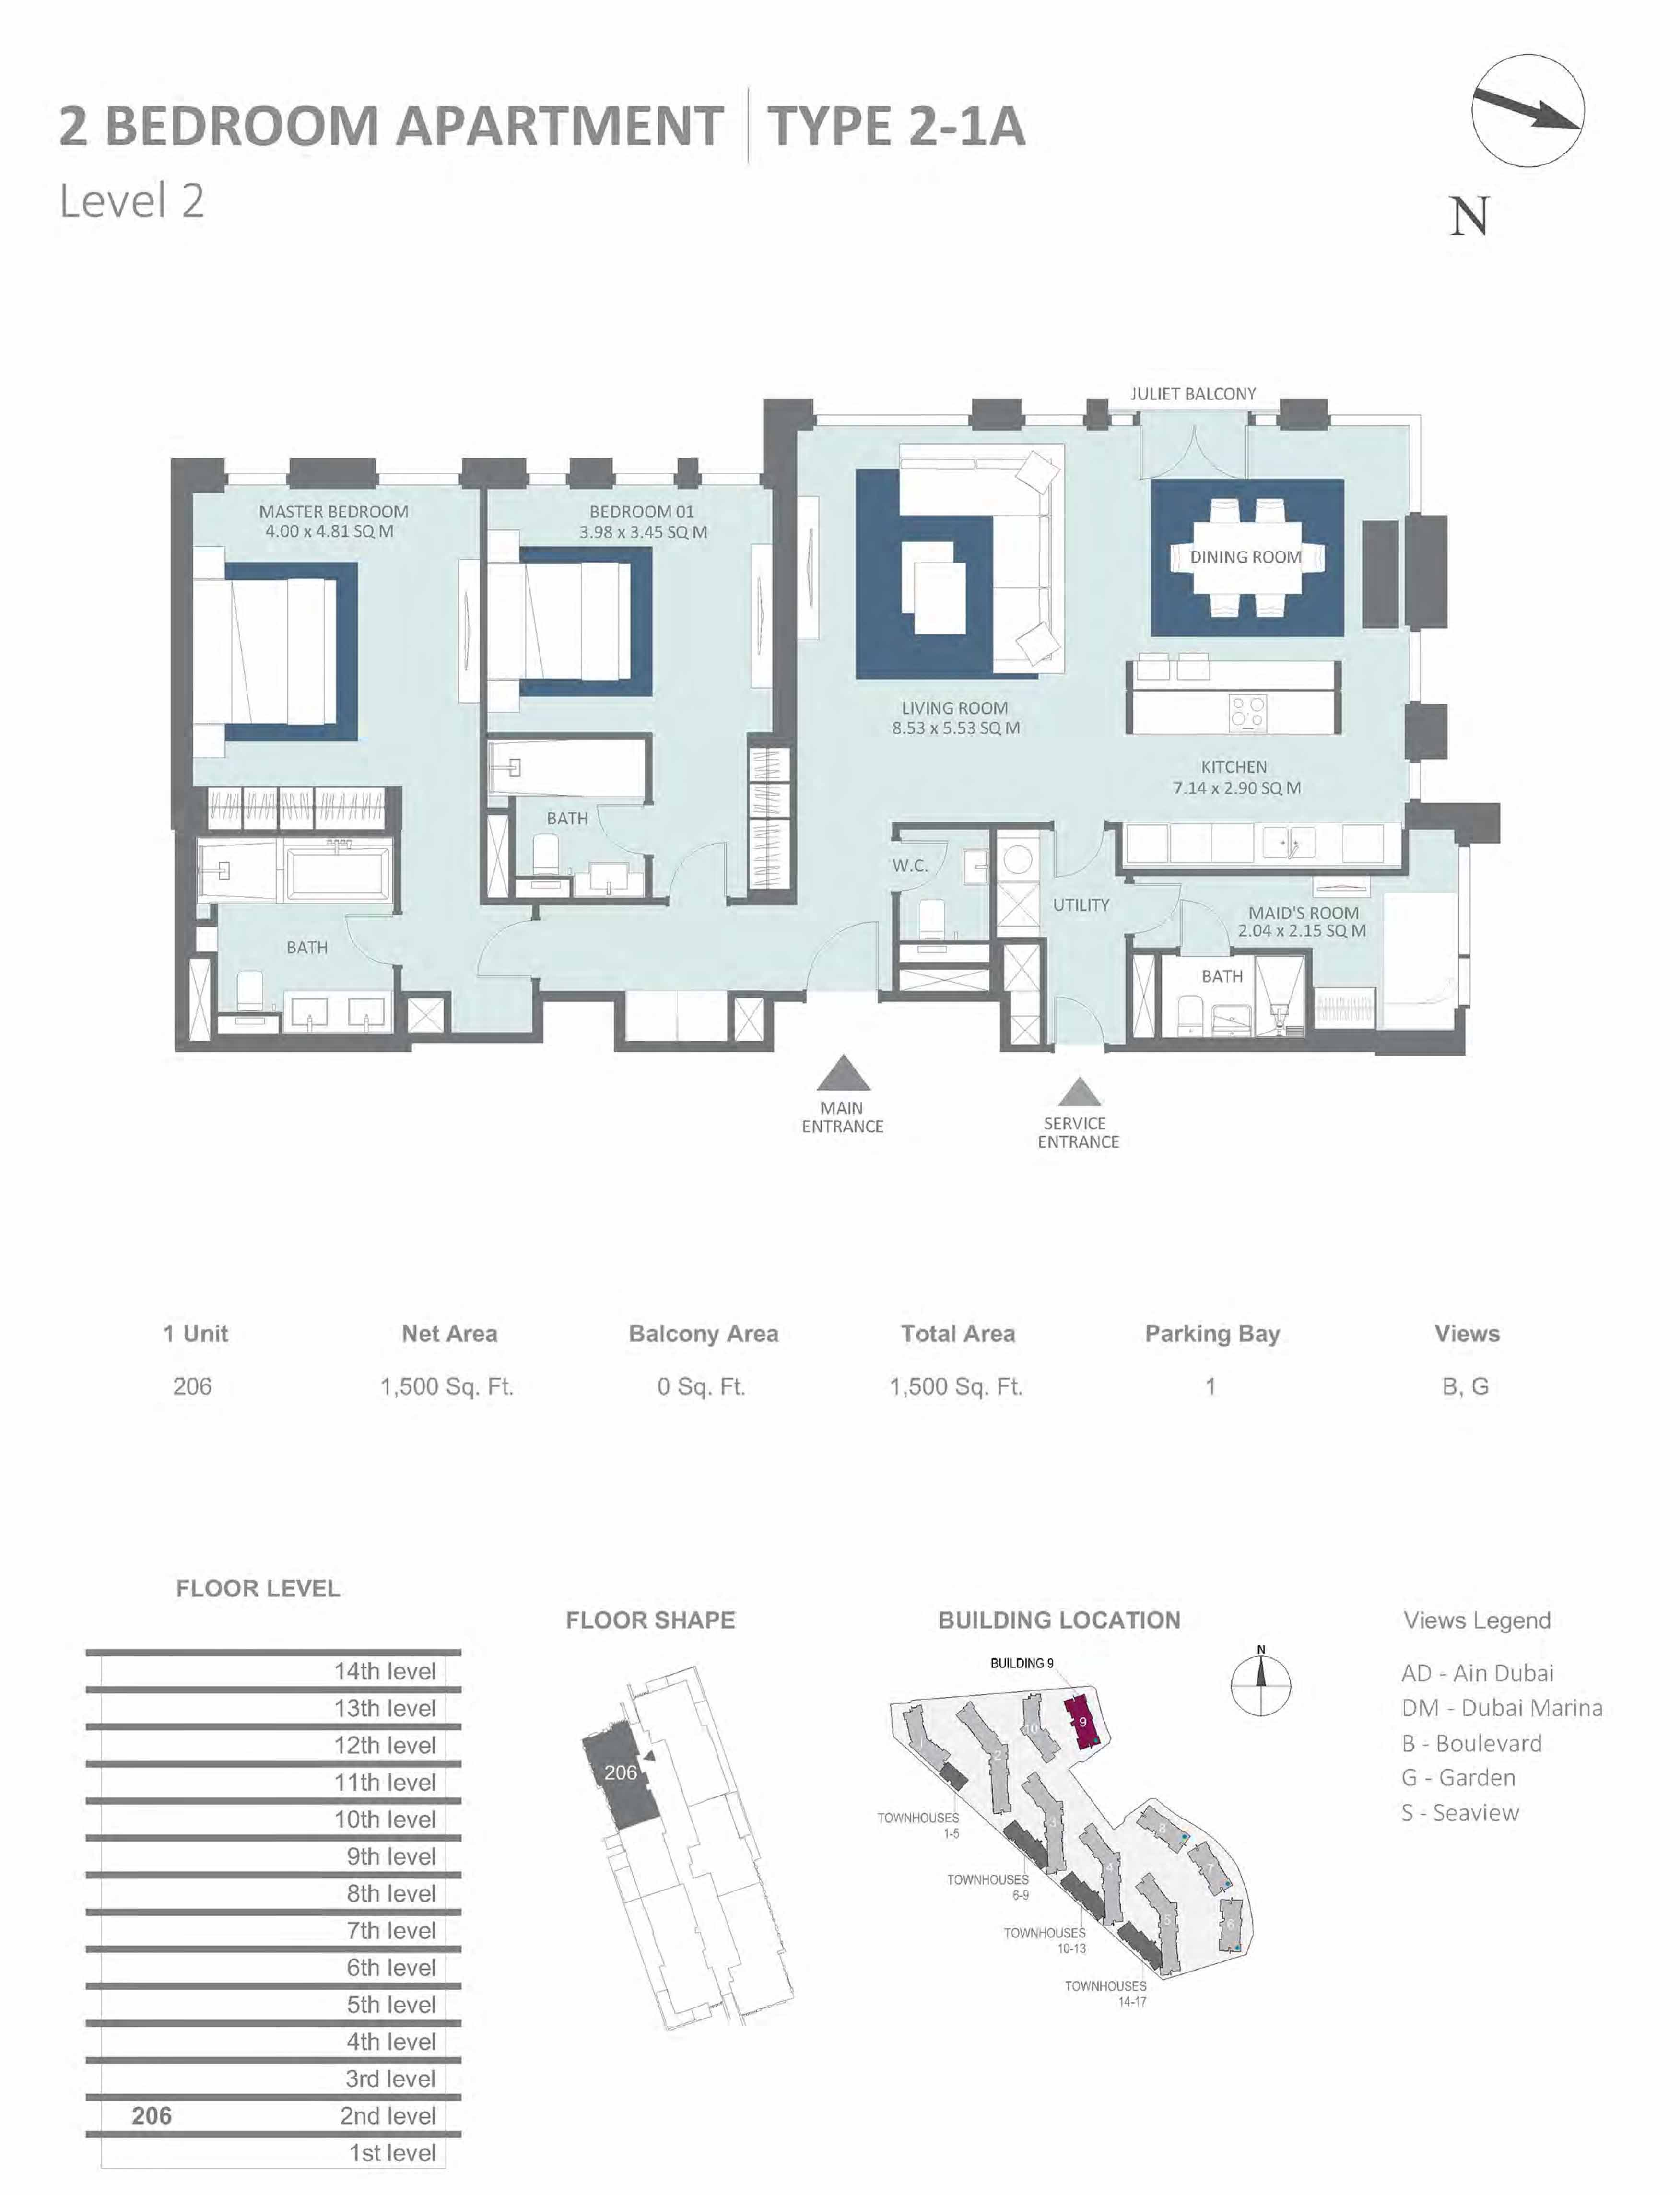 Building 9 - 2 Bedroom Type 2-1A, Level 2 Size 1500 sq.ft